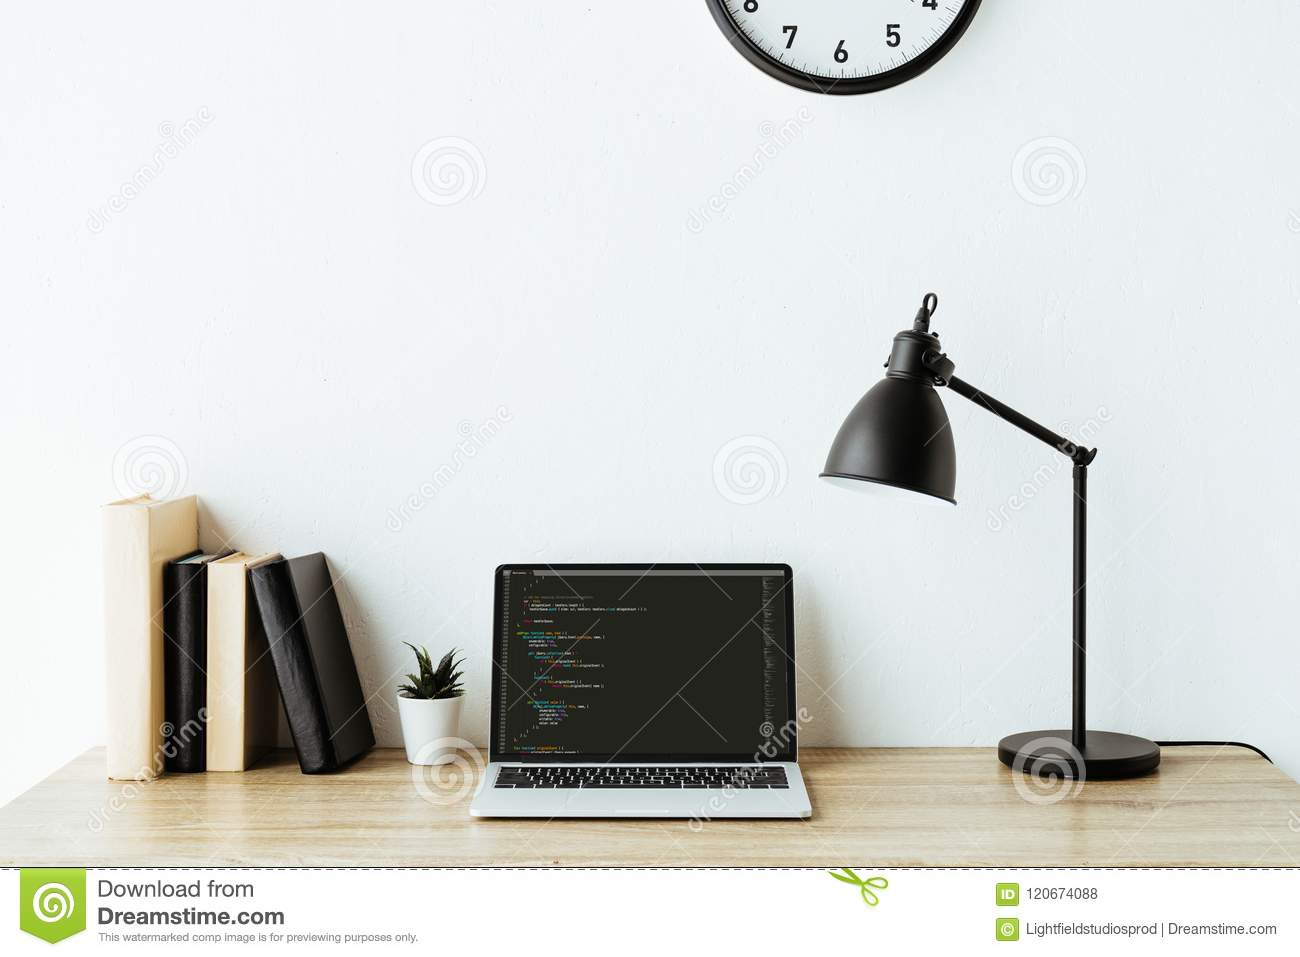 laptop with program code and books on work desk